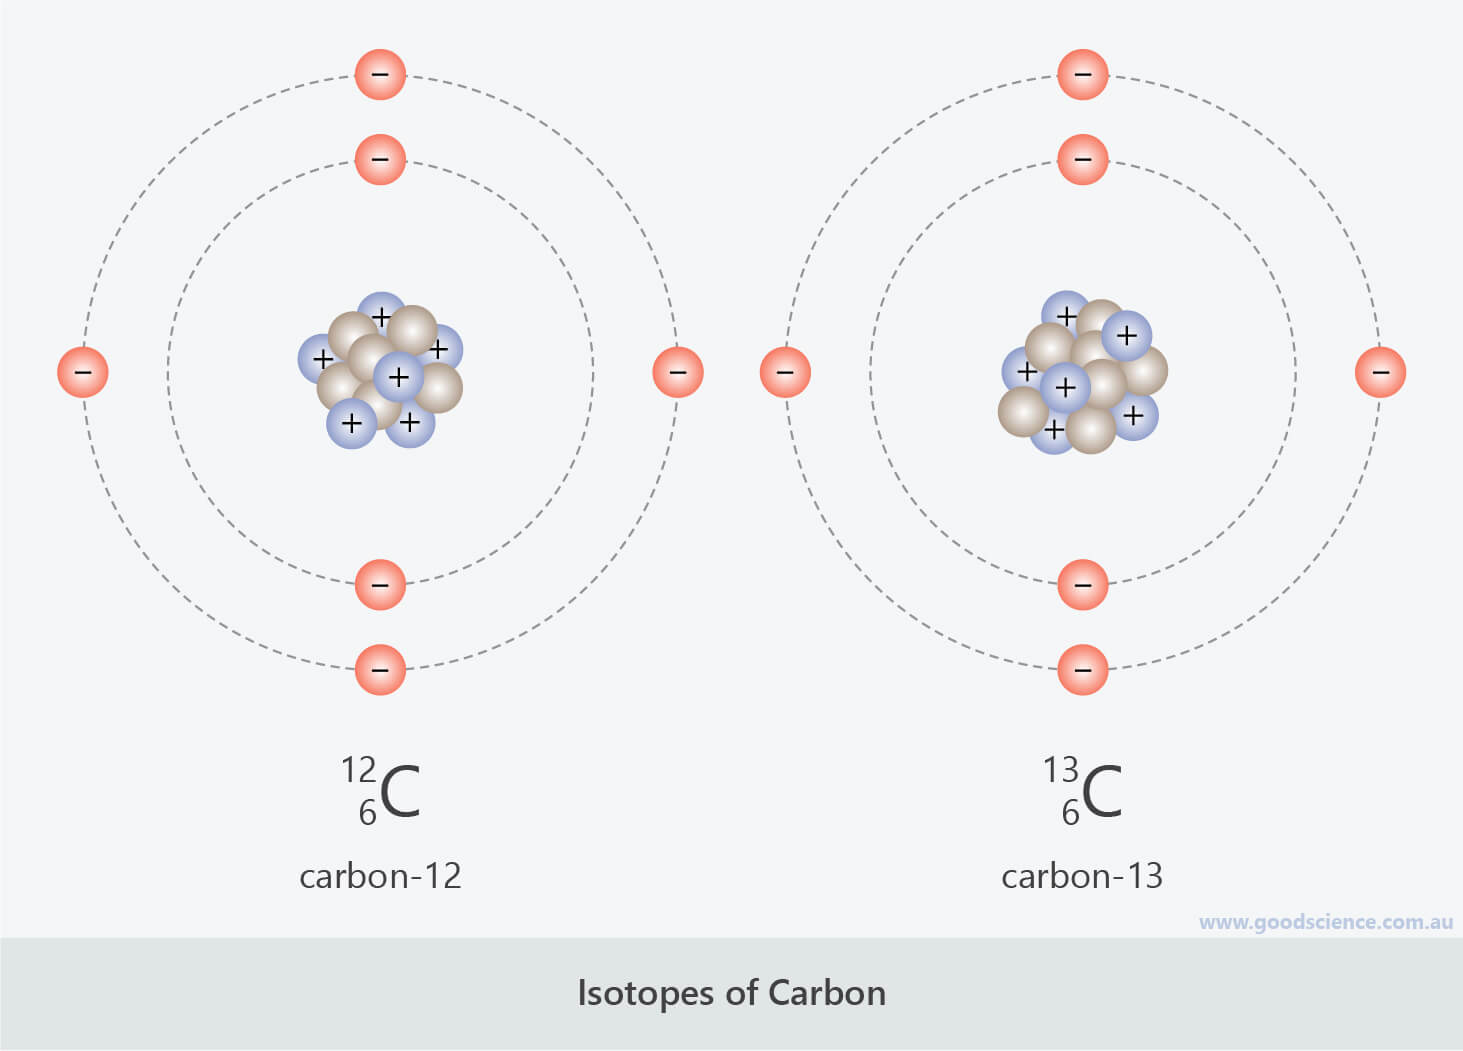 isotope carbon-12 carbon-13